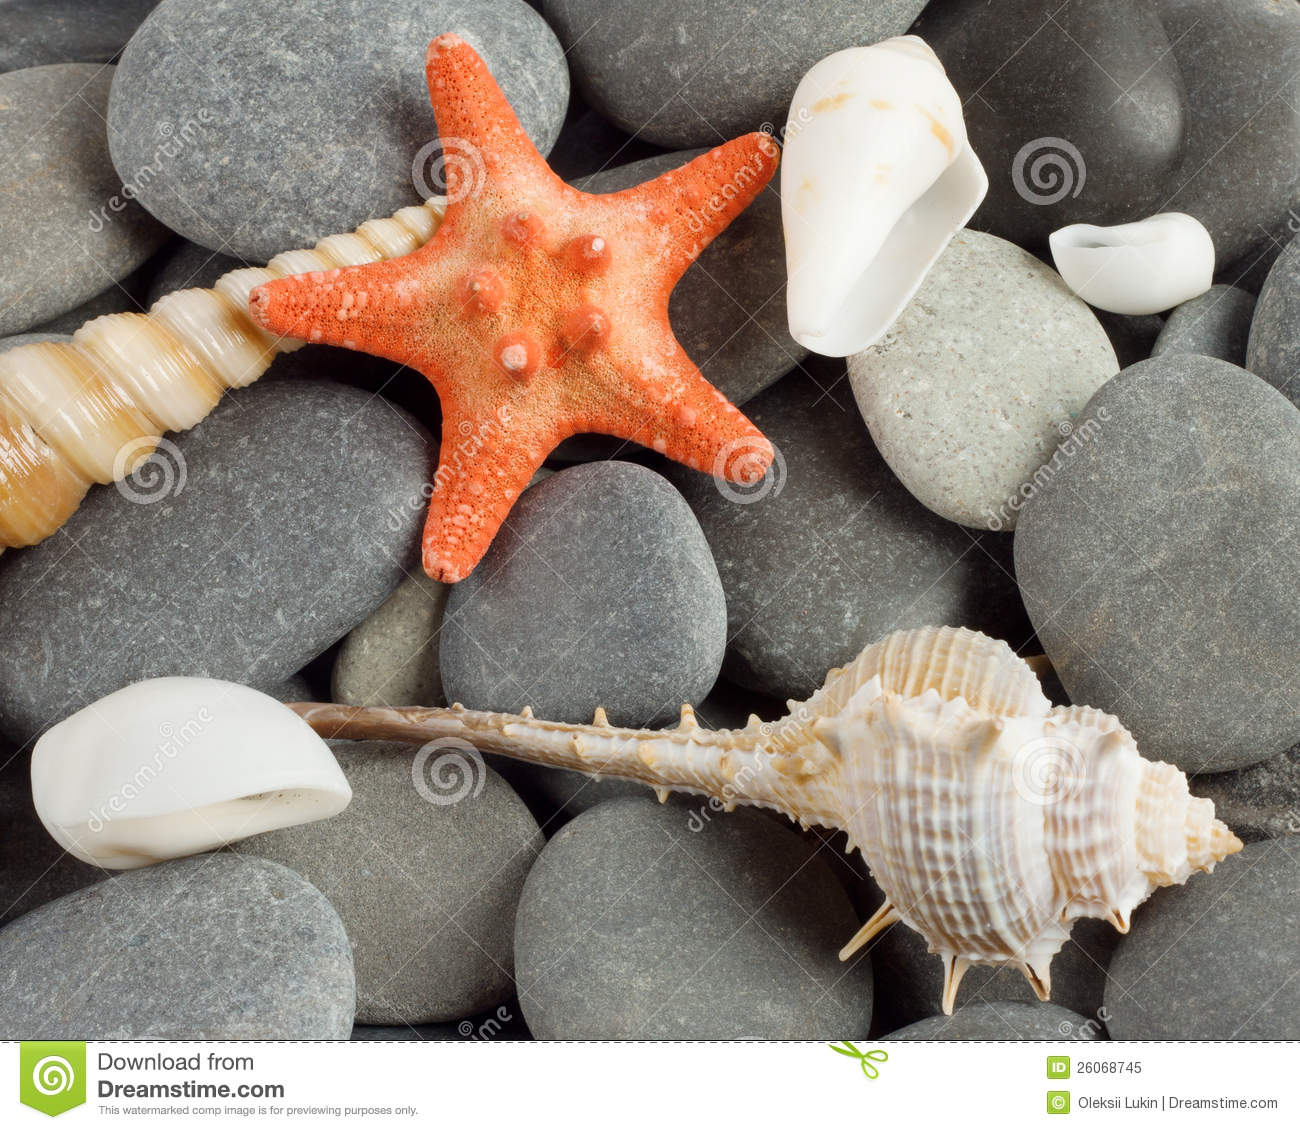 Background To Marine Mollusks And The Star Royalty Free ... L Mollusks